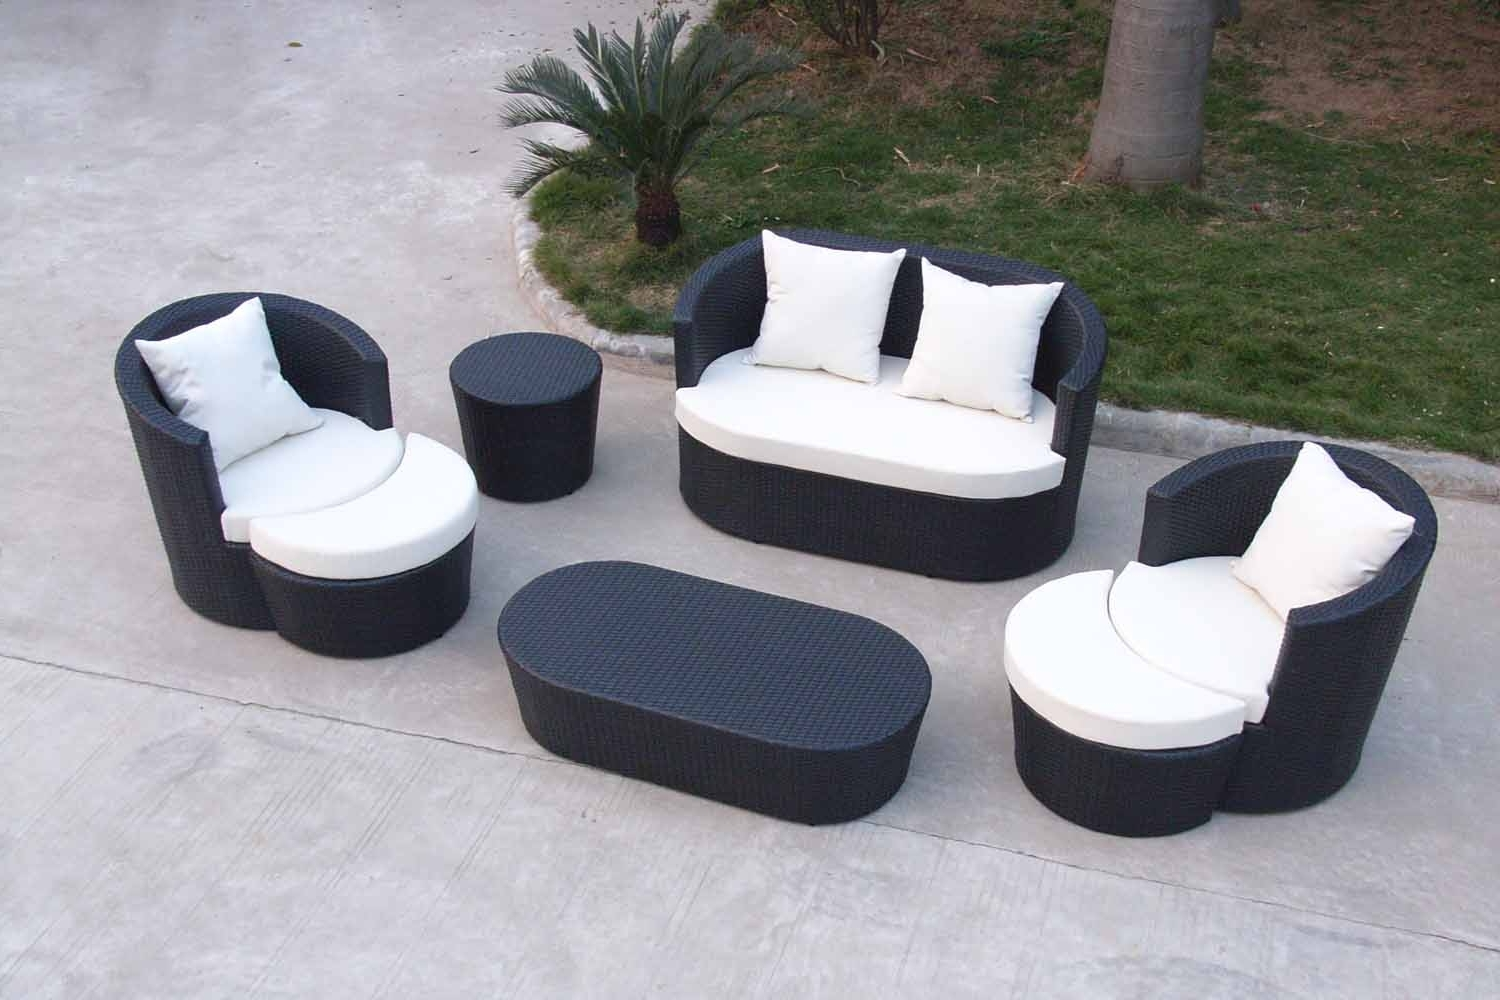 Popular Outdoor Sofa Chairs With Regard To Sofa : Outdoor Patio Furniture Sofa Sets Outdoor Furniture Sofa (View 10 of 15)